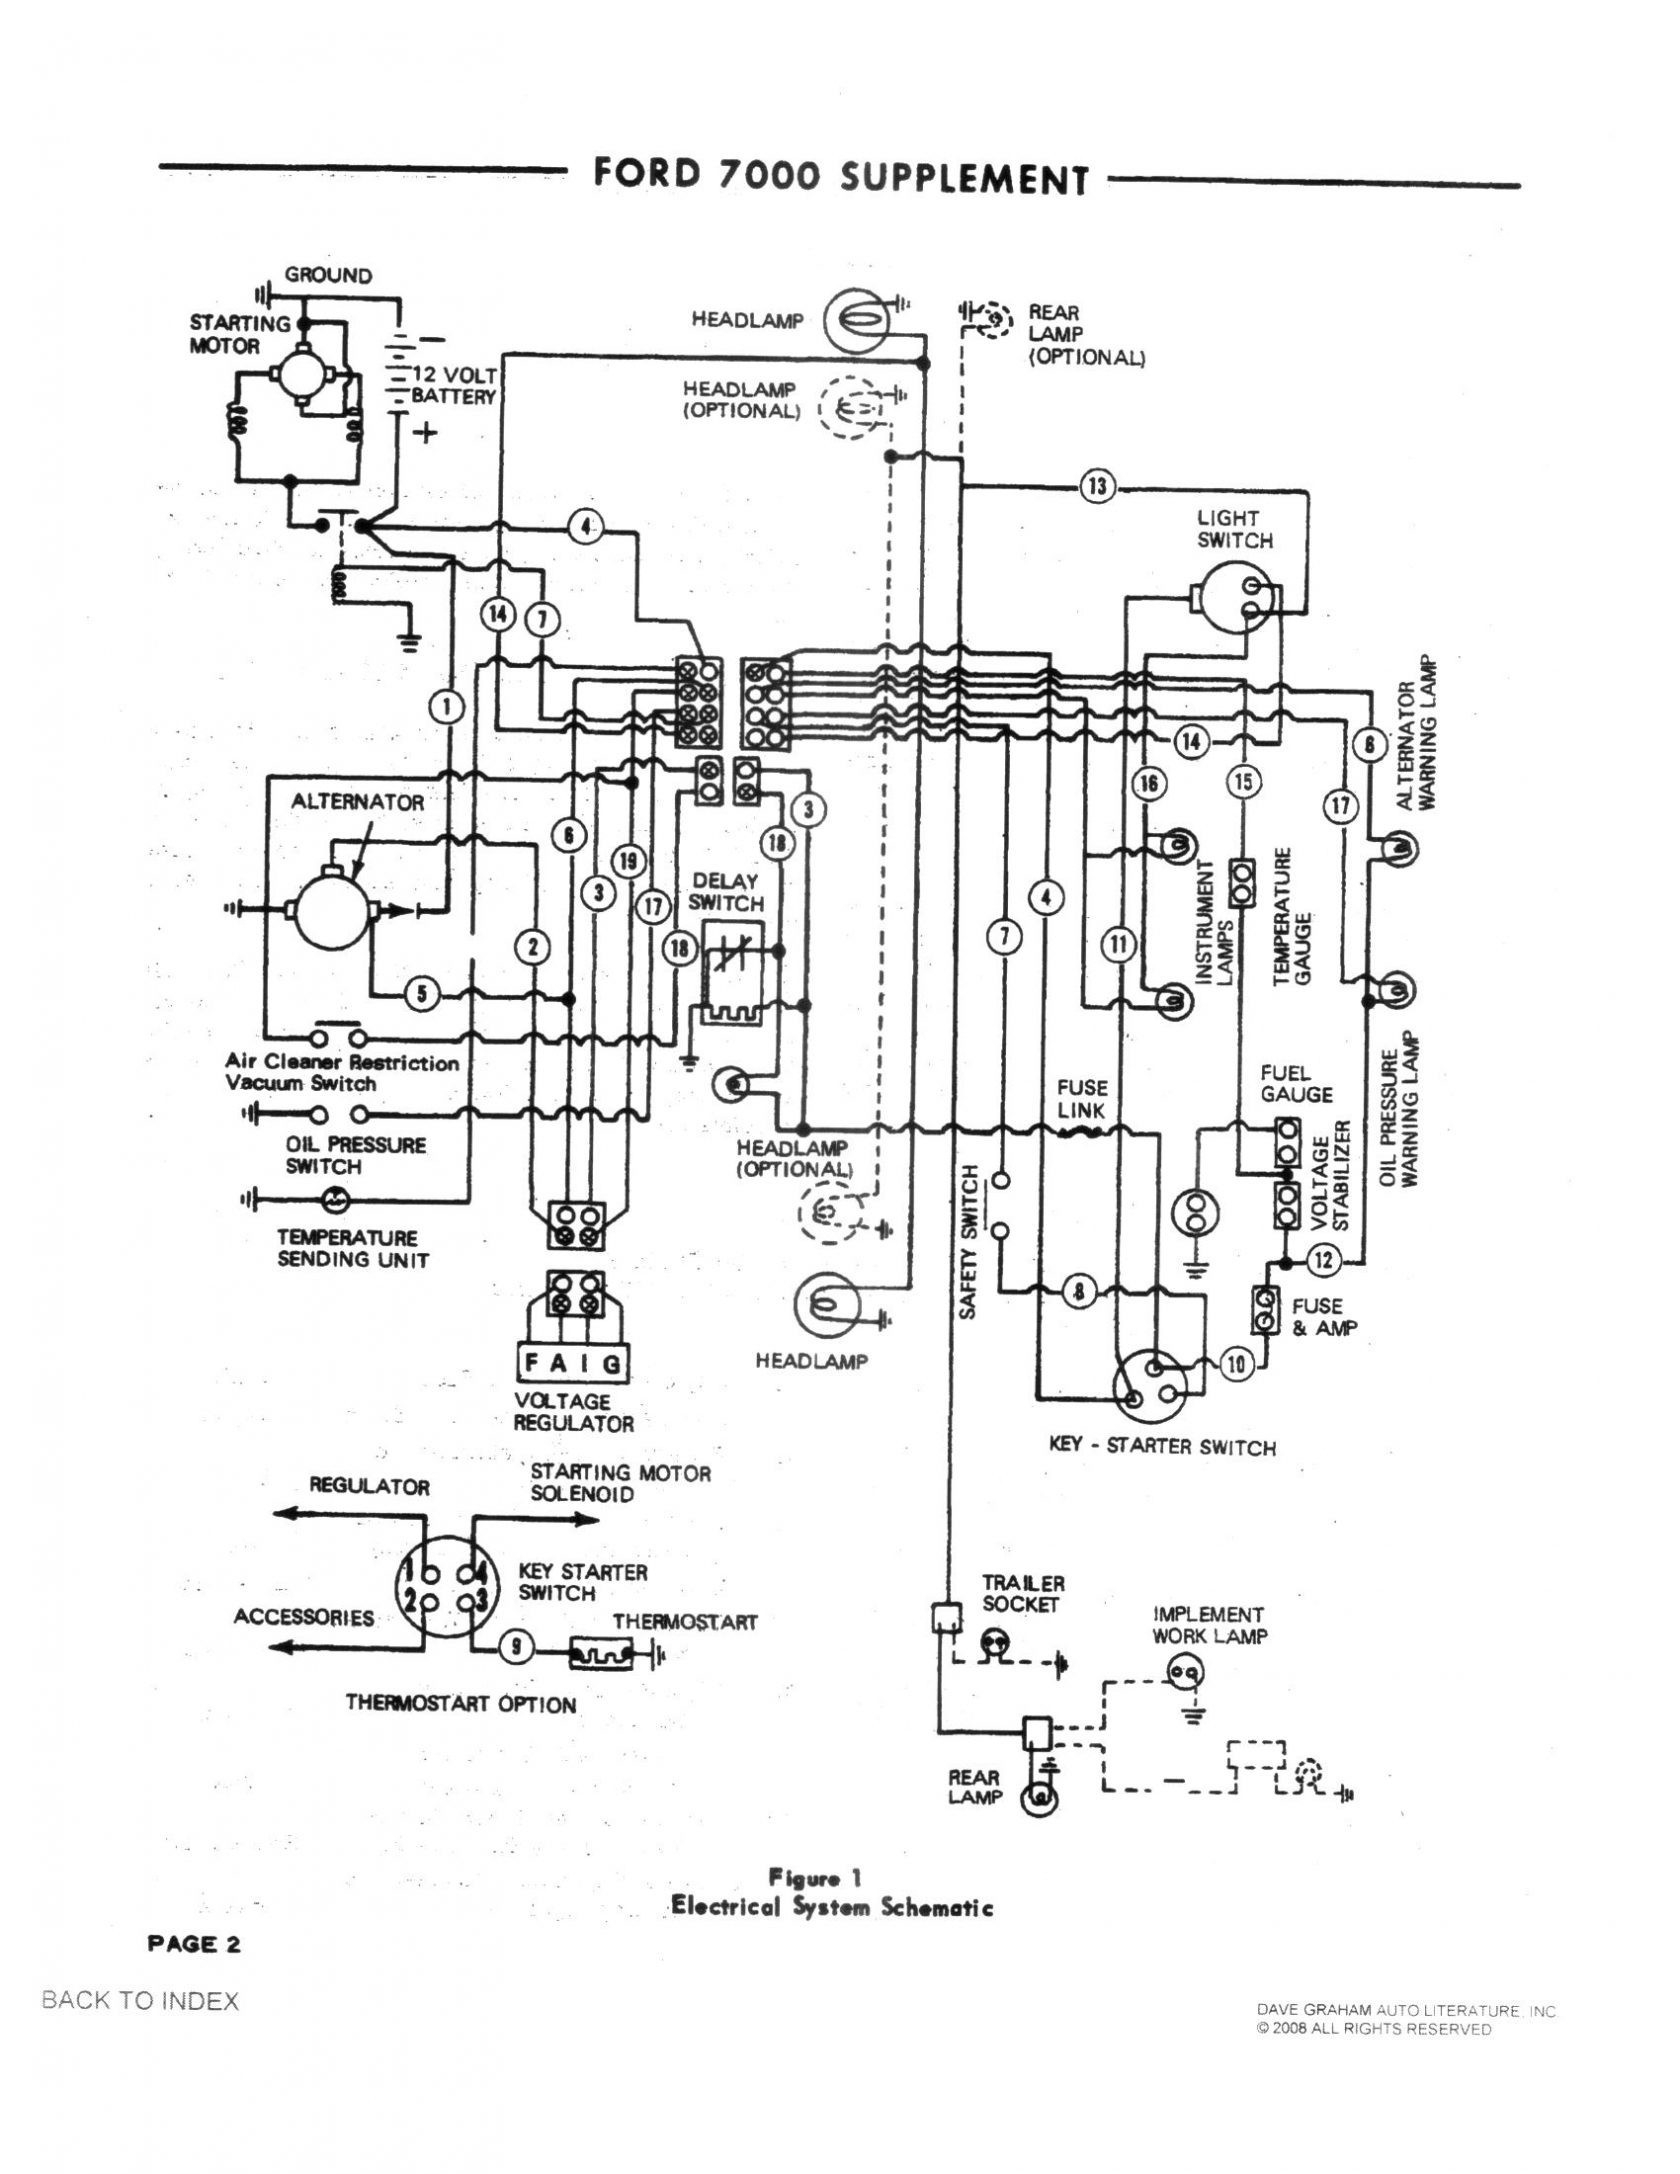 1 Wire Alternator Diagram